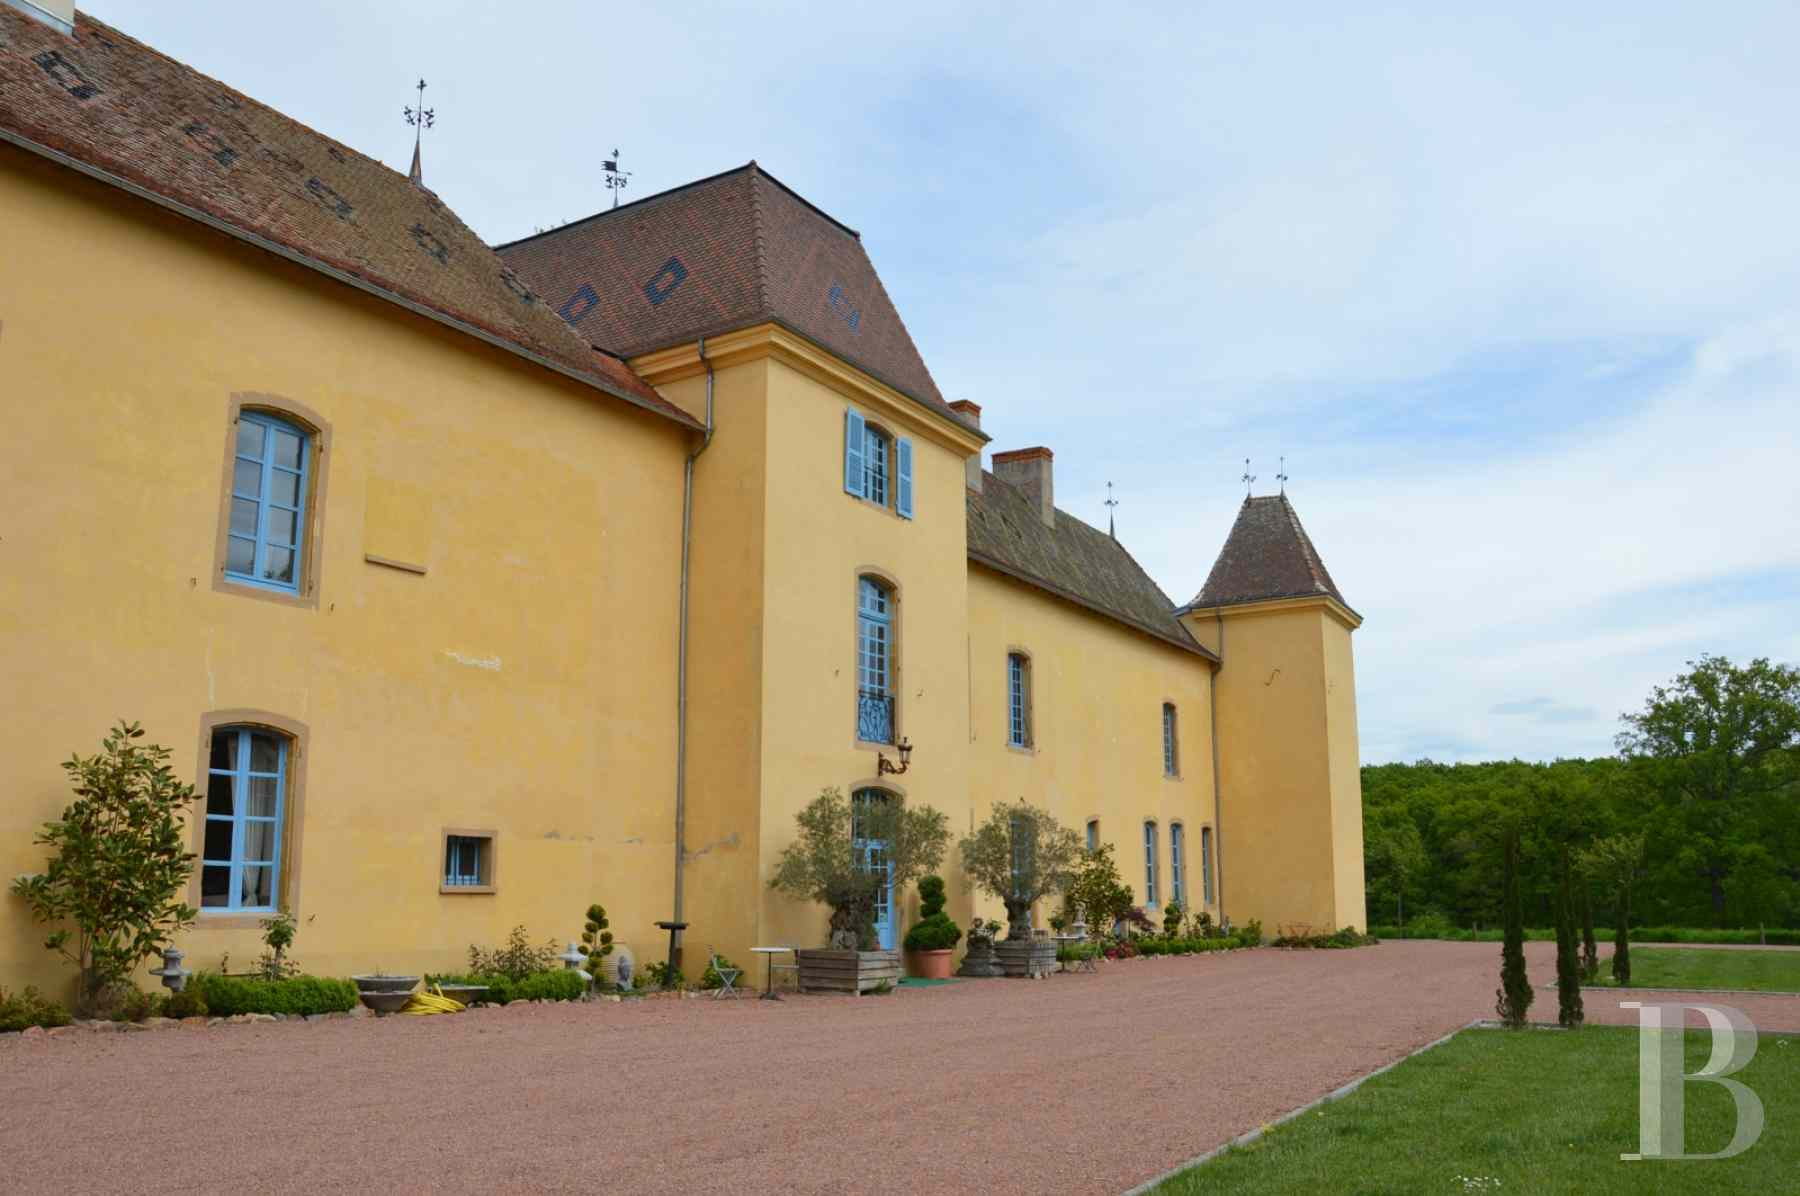 chateaux for sale France rhones alps roanne region - 2 zoom